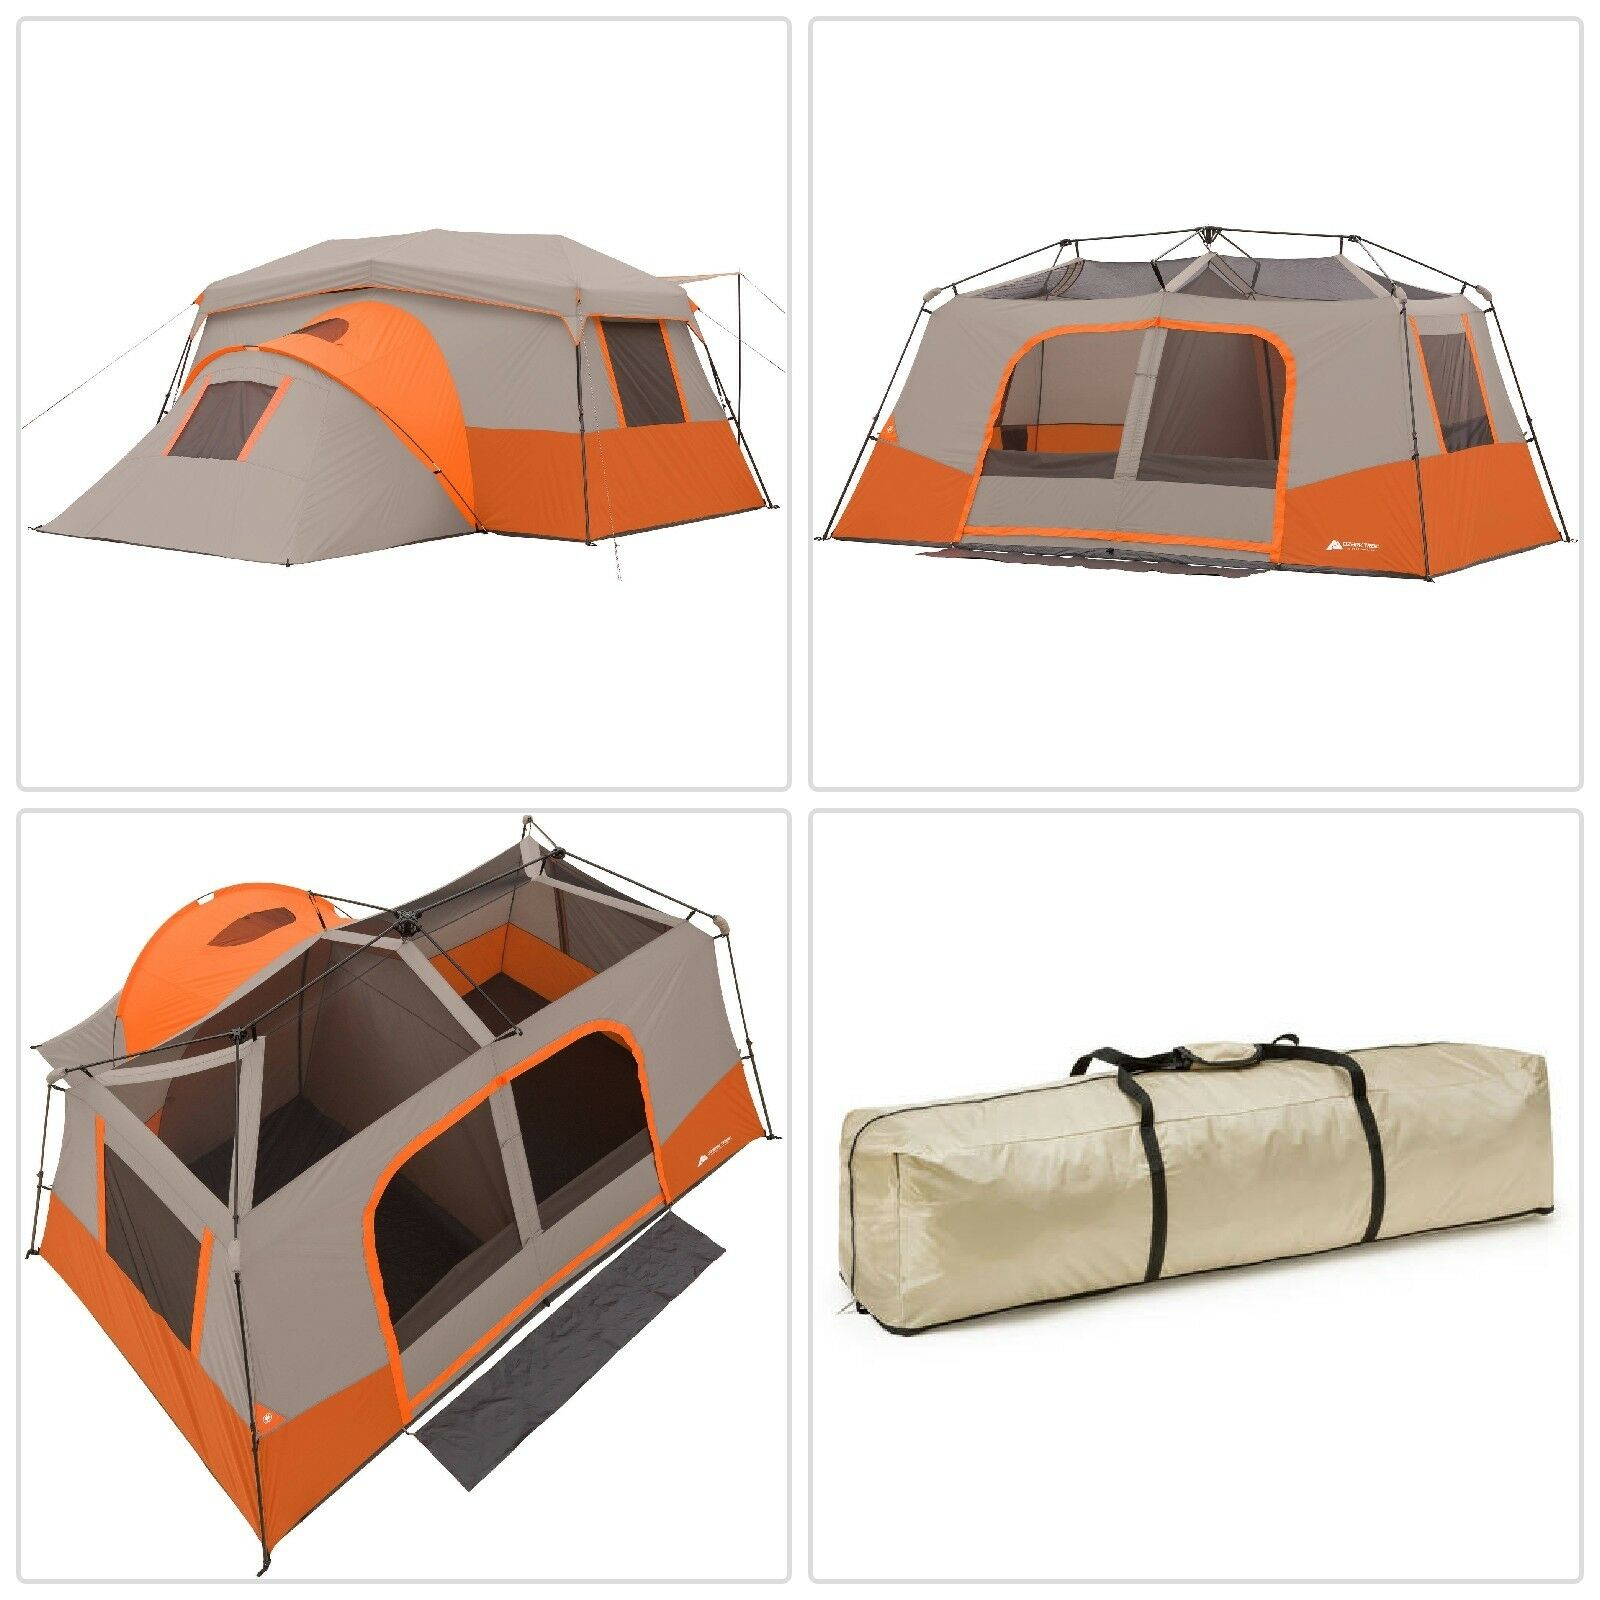 Instant Cabin Camping Tent 3 Rooms with Private Room 11-Person Family Shelter